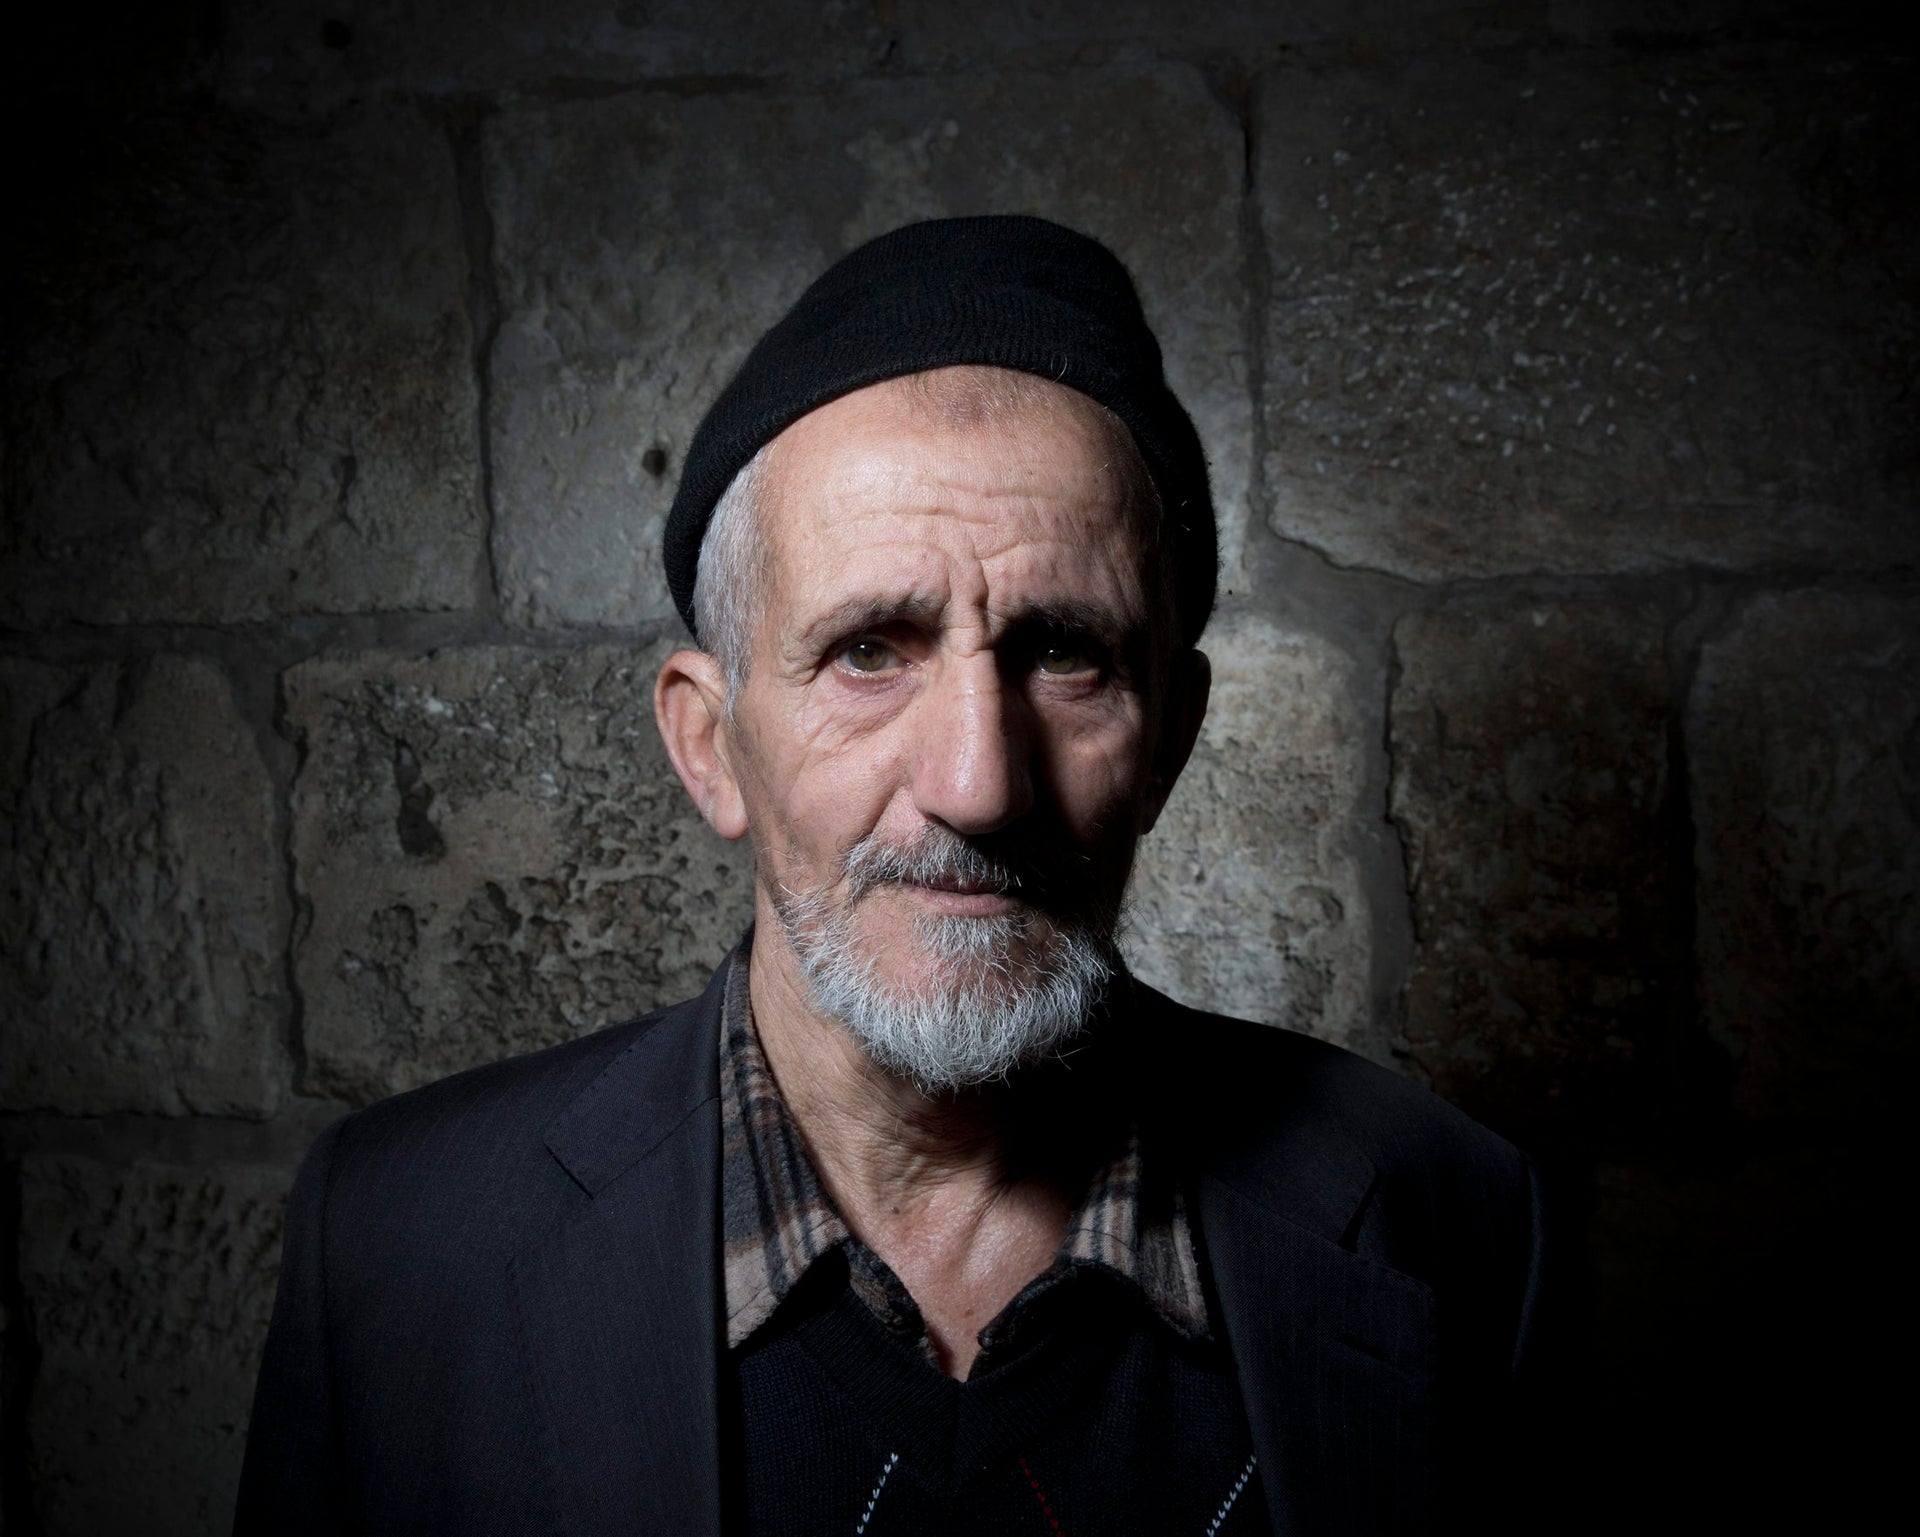 Palestinian Mohammed Asmai poses for a portrait in Jerusalem's Old City, Feb. 11, 2018.